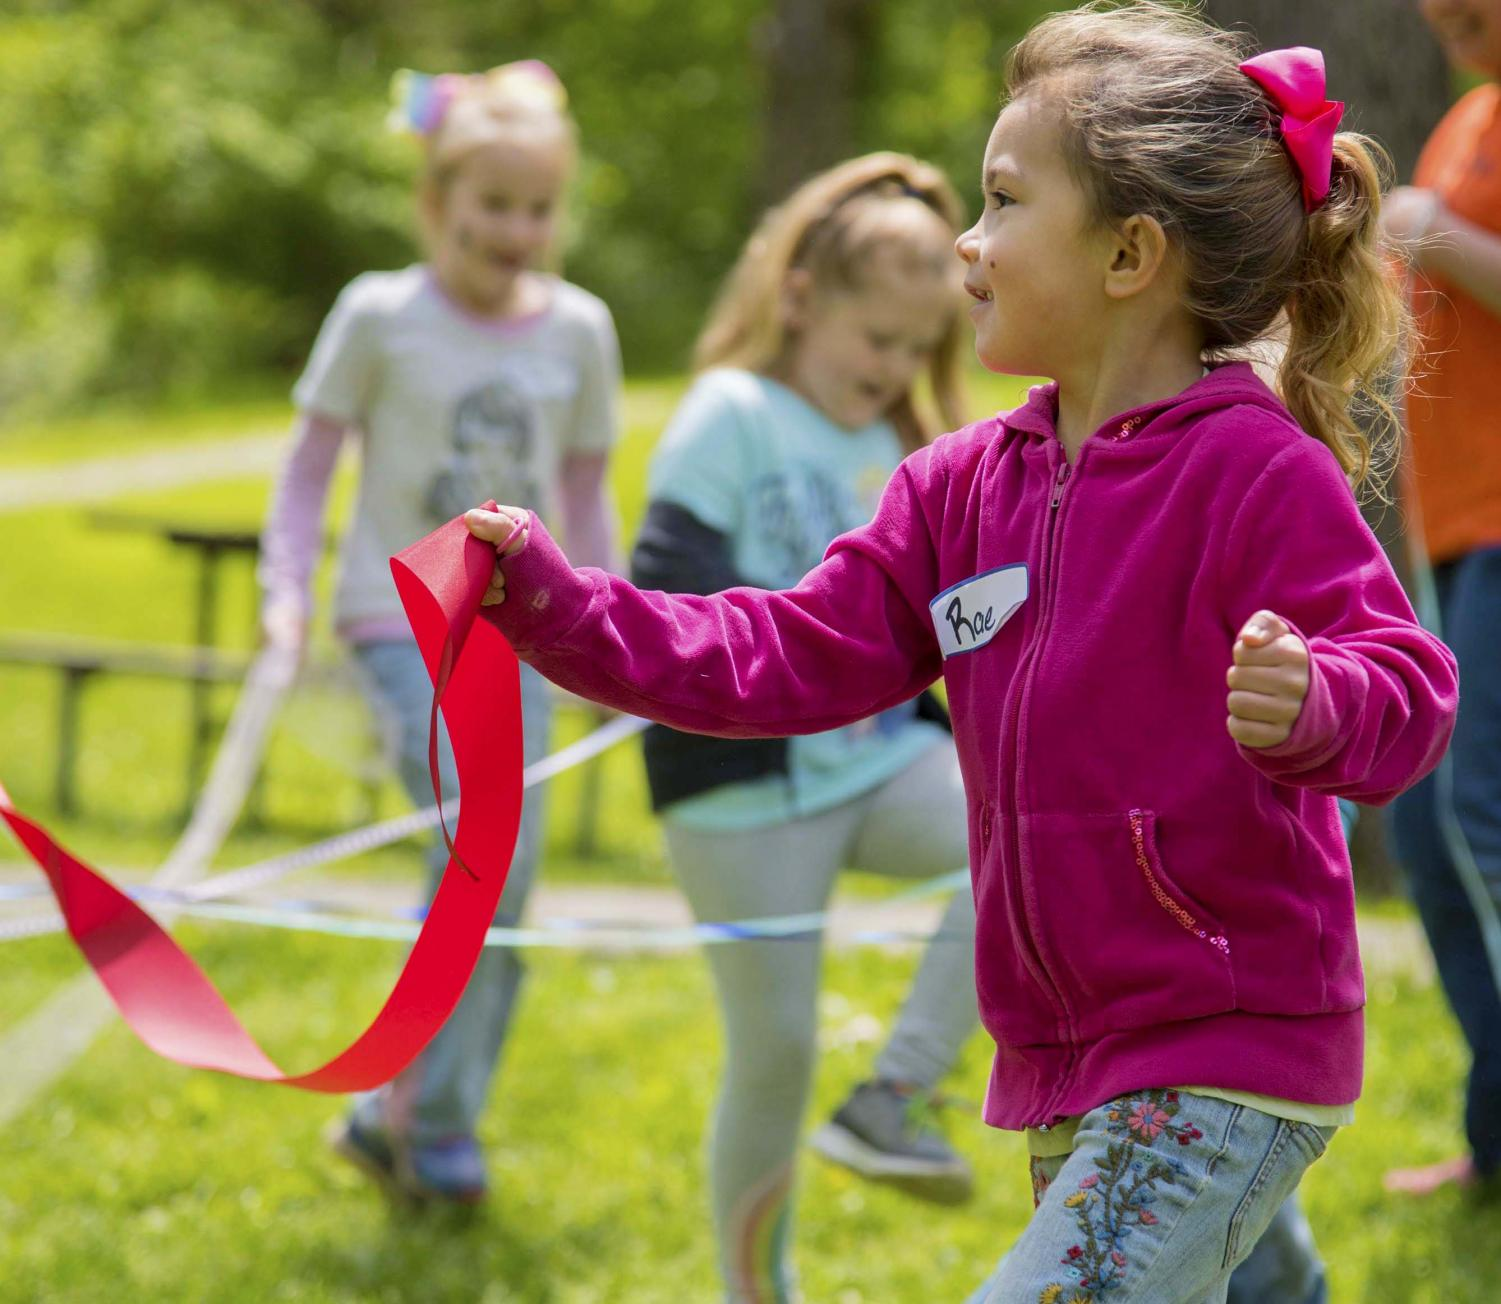 Rae Gogan-Thomas from West Frankfort twirls her ribbon around during the annual SIPA Beltane Ritual at Giant City State Park April 28, 2019. The kids had their own Maypole to celebrate the season of growth.